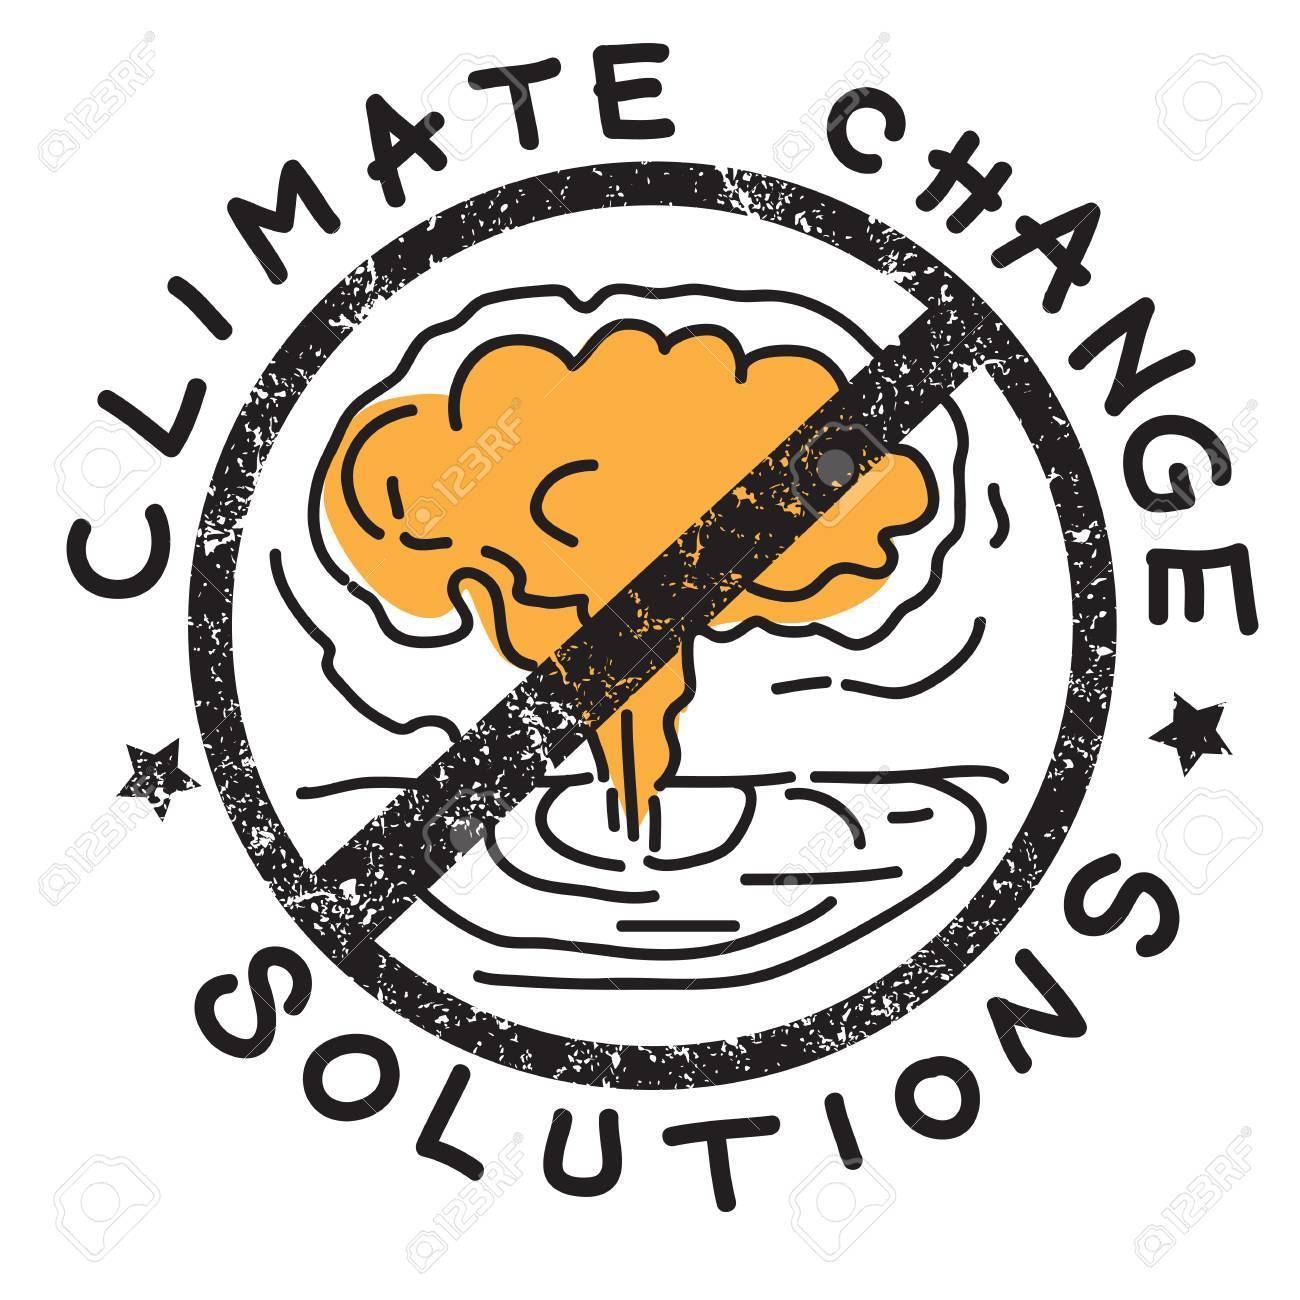 Climate Change Solution Illustration Hand Drawn Sticker Isolated